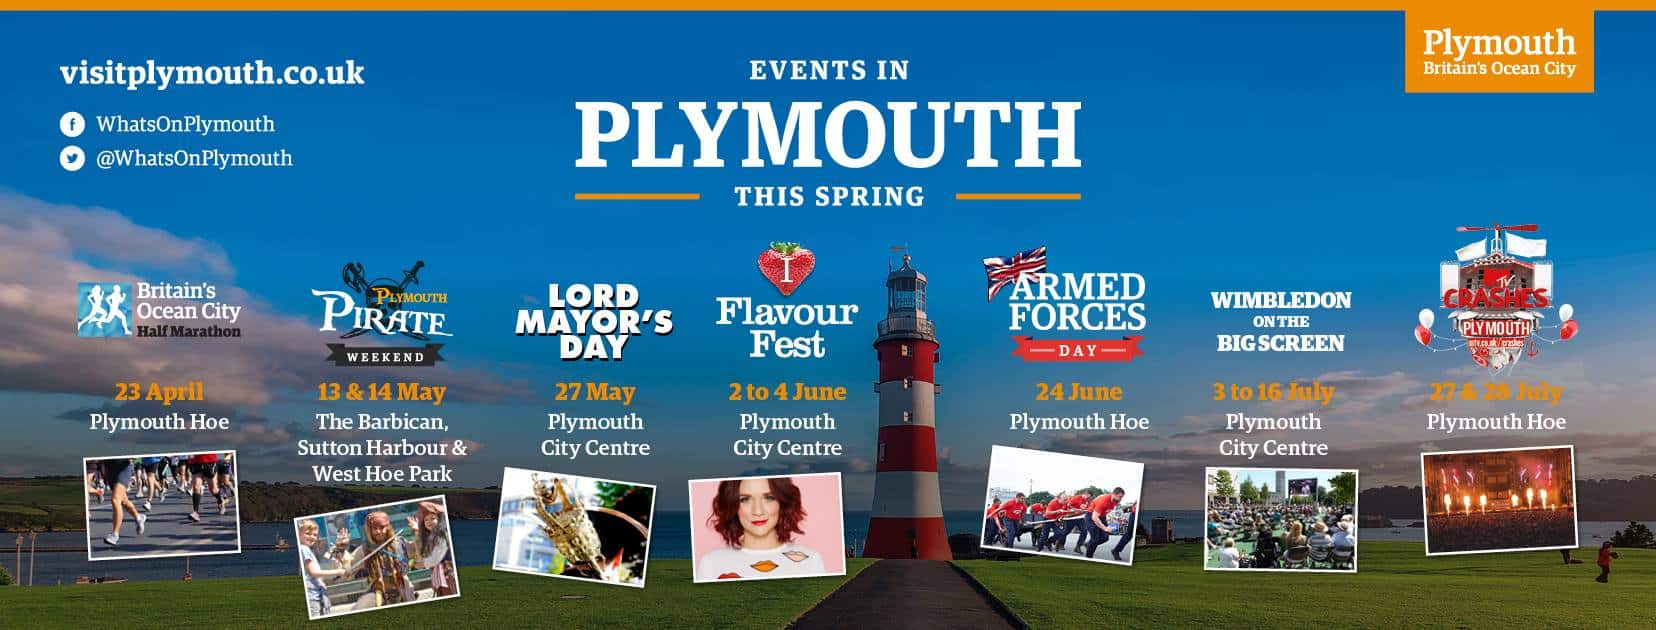 Plymouth Events Summer 2017